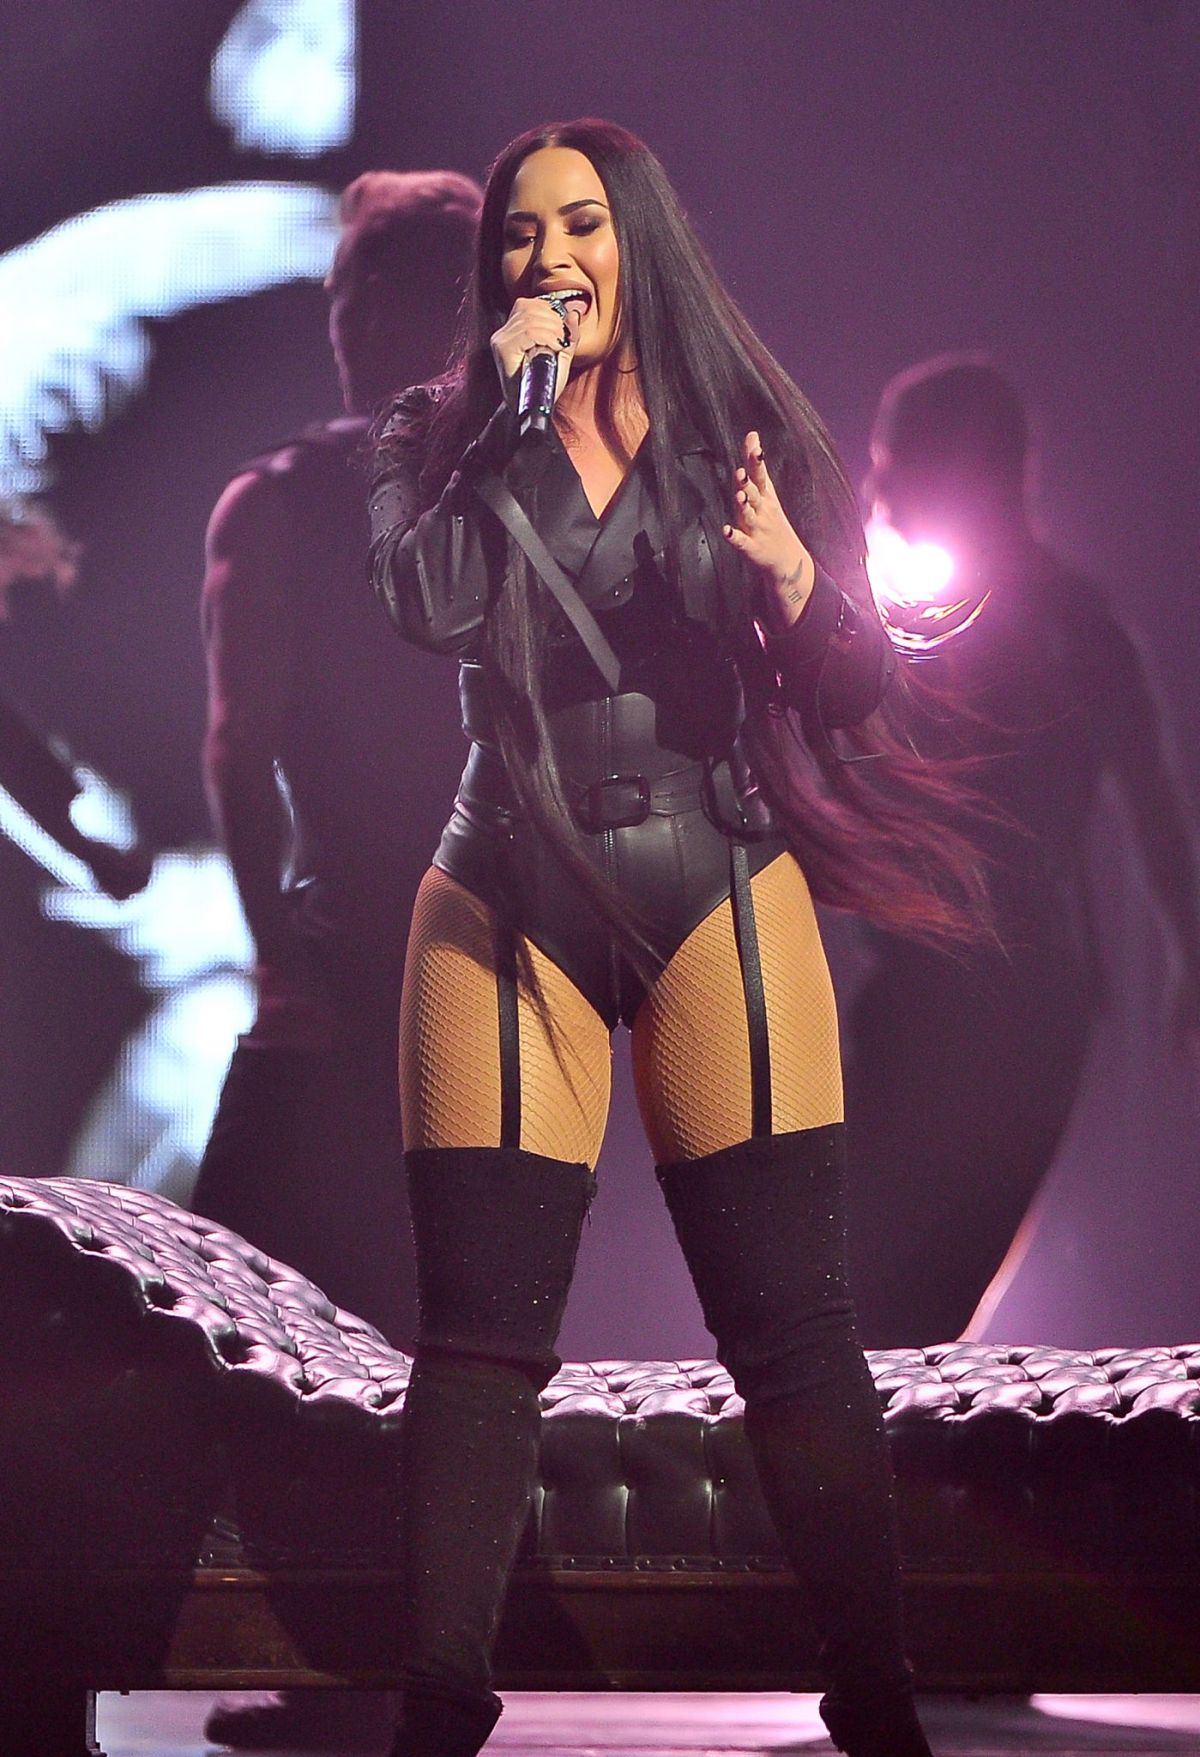 Demi Lovato Performs At Her Tell Me You Love Me Tour In San Jose 02 28 2018 Hawtcelebs